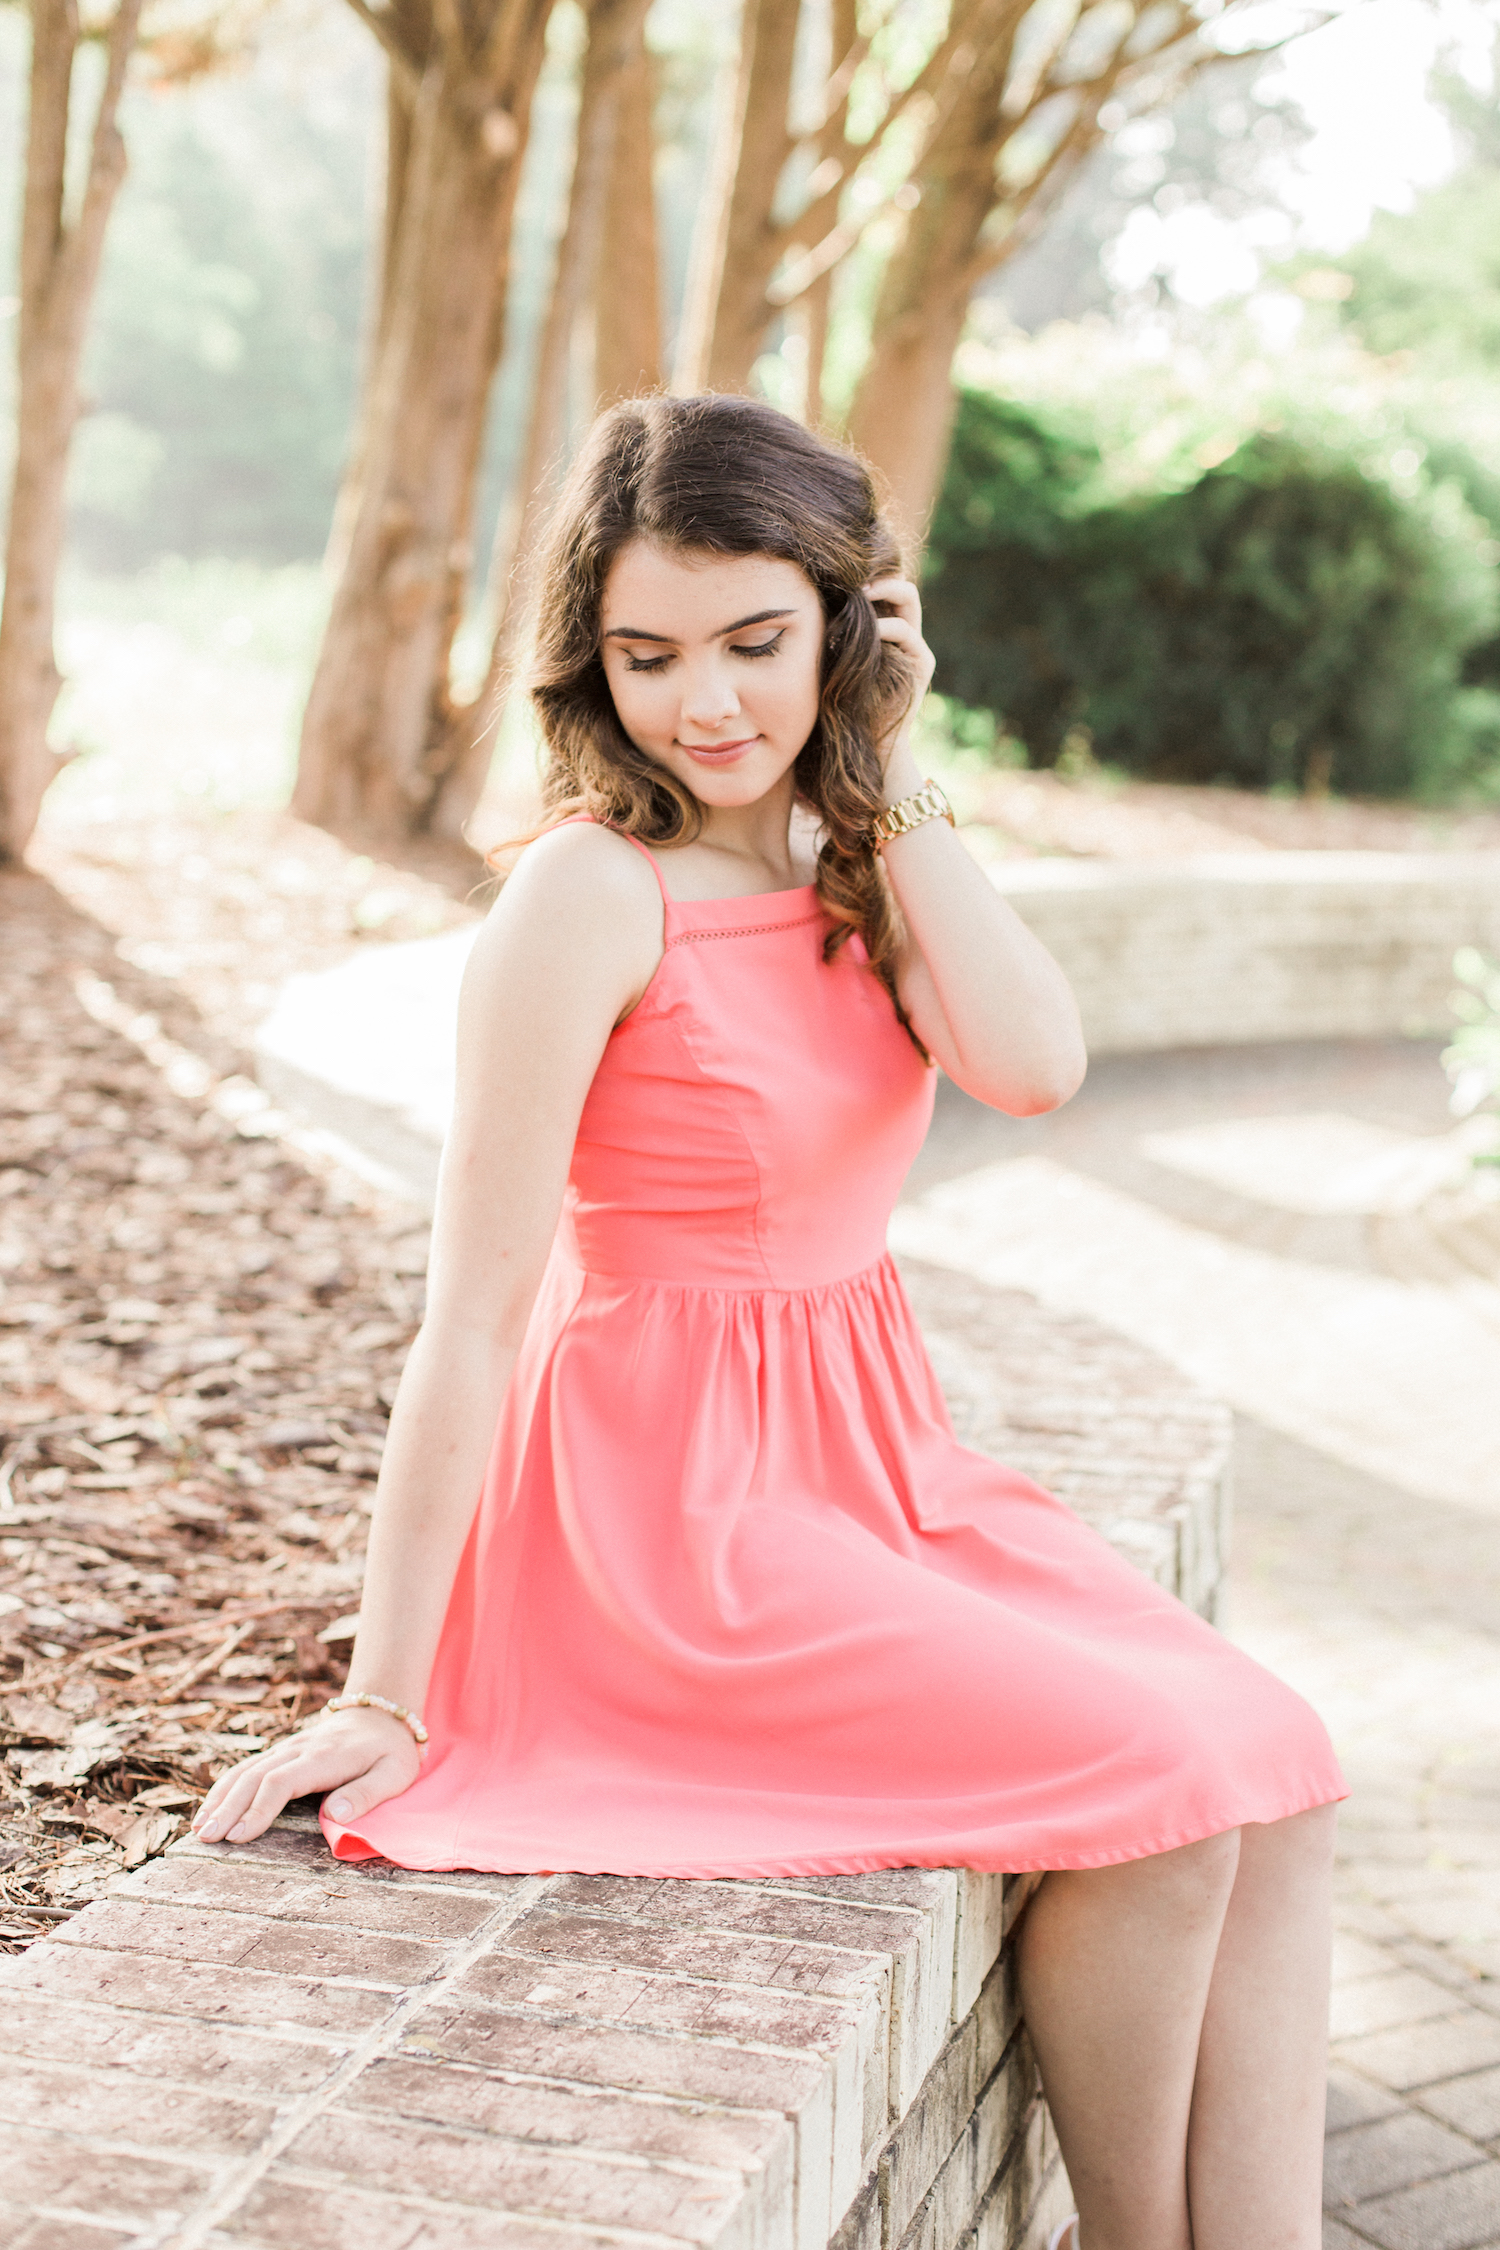 Summer time high school senior session at Vine Mansion Park by Kesia Marie Photography. Featuring feminine, garden details. Senior photos in gorgeous morning light.